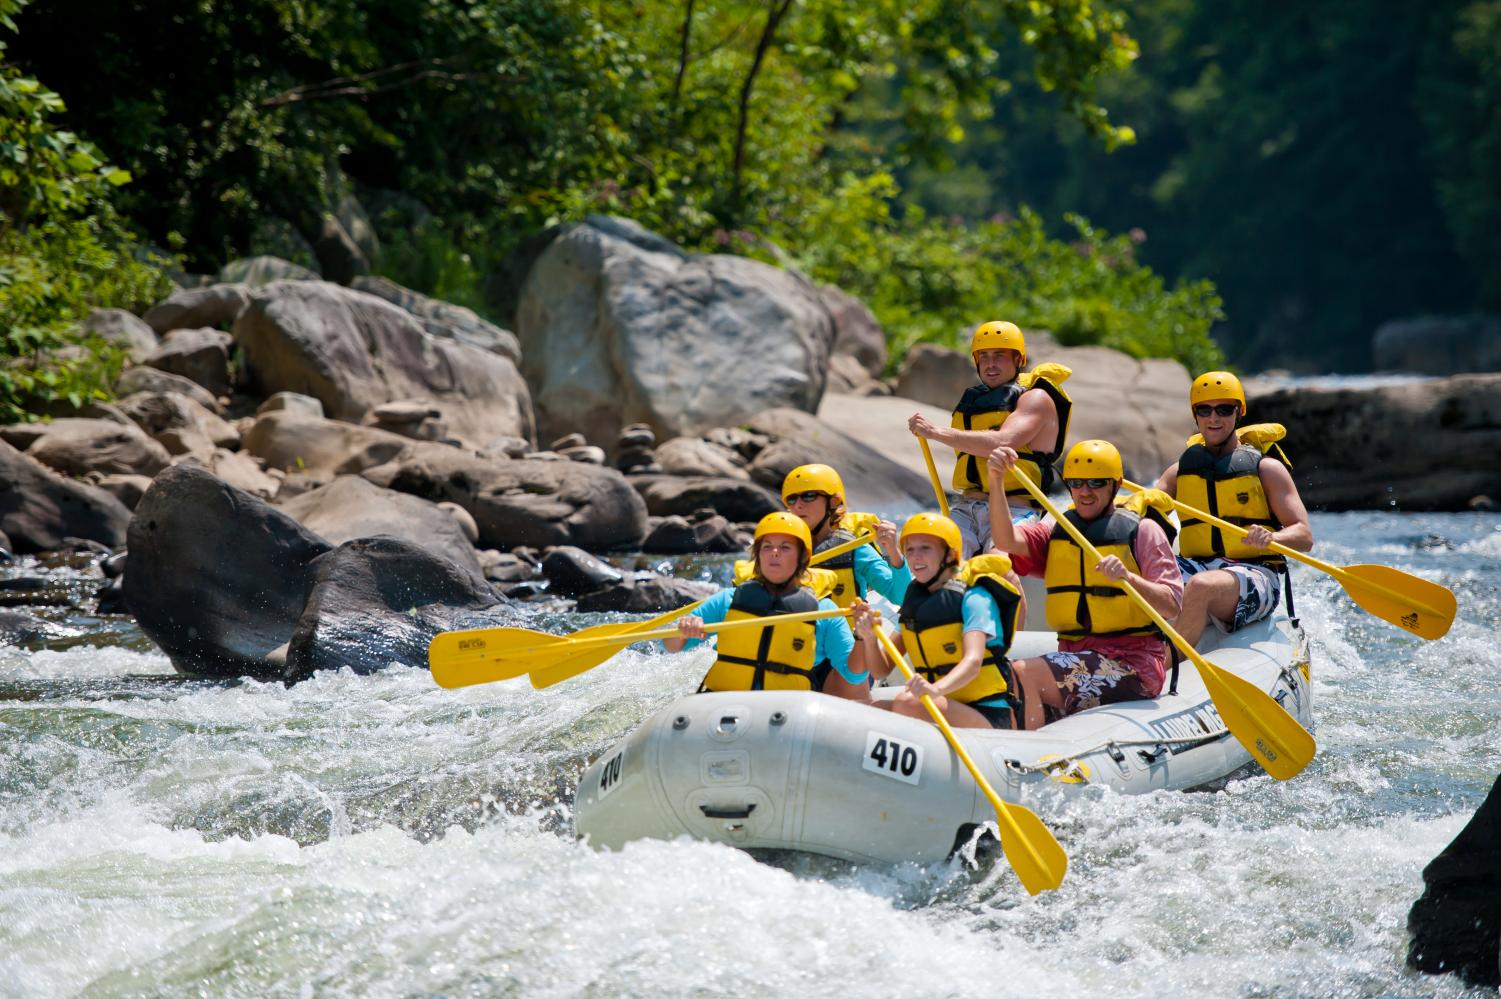 Whitewater rafting on the Youhgiogheny River at Ohiopyle State Park in Pennsylvania's Laurel Highlands. Photo Credit: (Laurel Highlands Visitors Bureau)